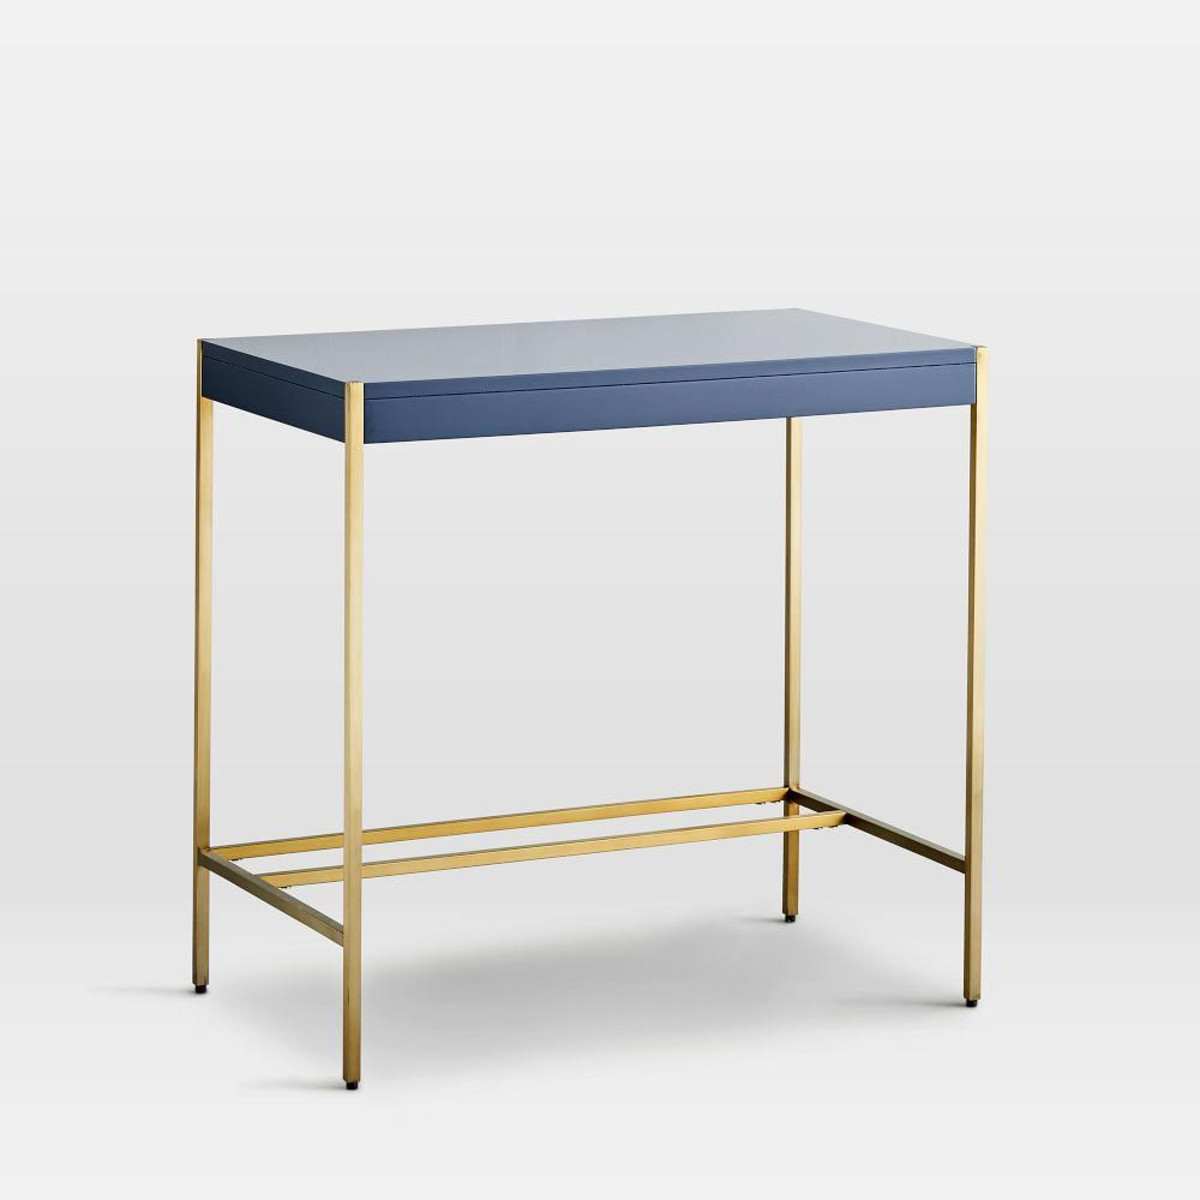 zane mini desk navy west elm media accent side table full size bunkie board clear acrylic nightstand wicker patio ice box cooler kmart bedside kitchen prep barn dining room